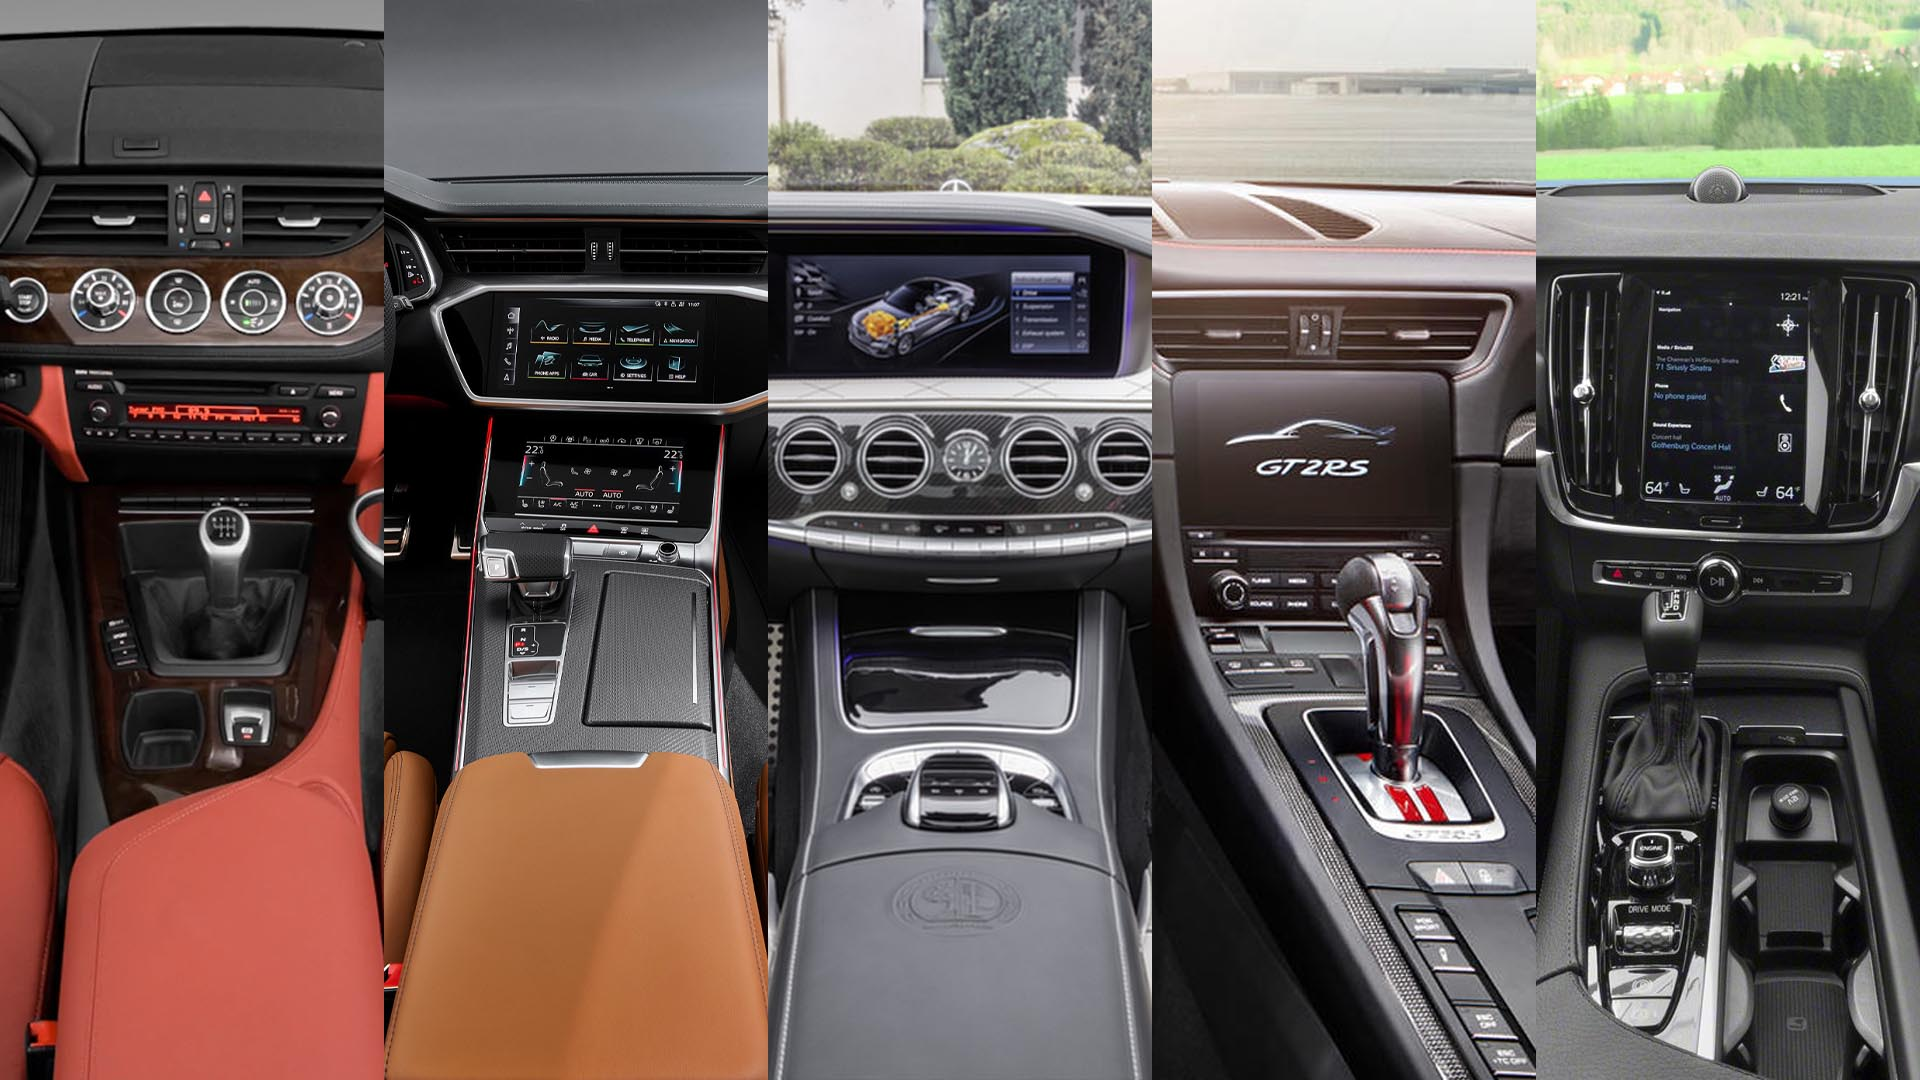 Our Top 5 Favorite Car Interiors Of The Decade